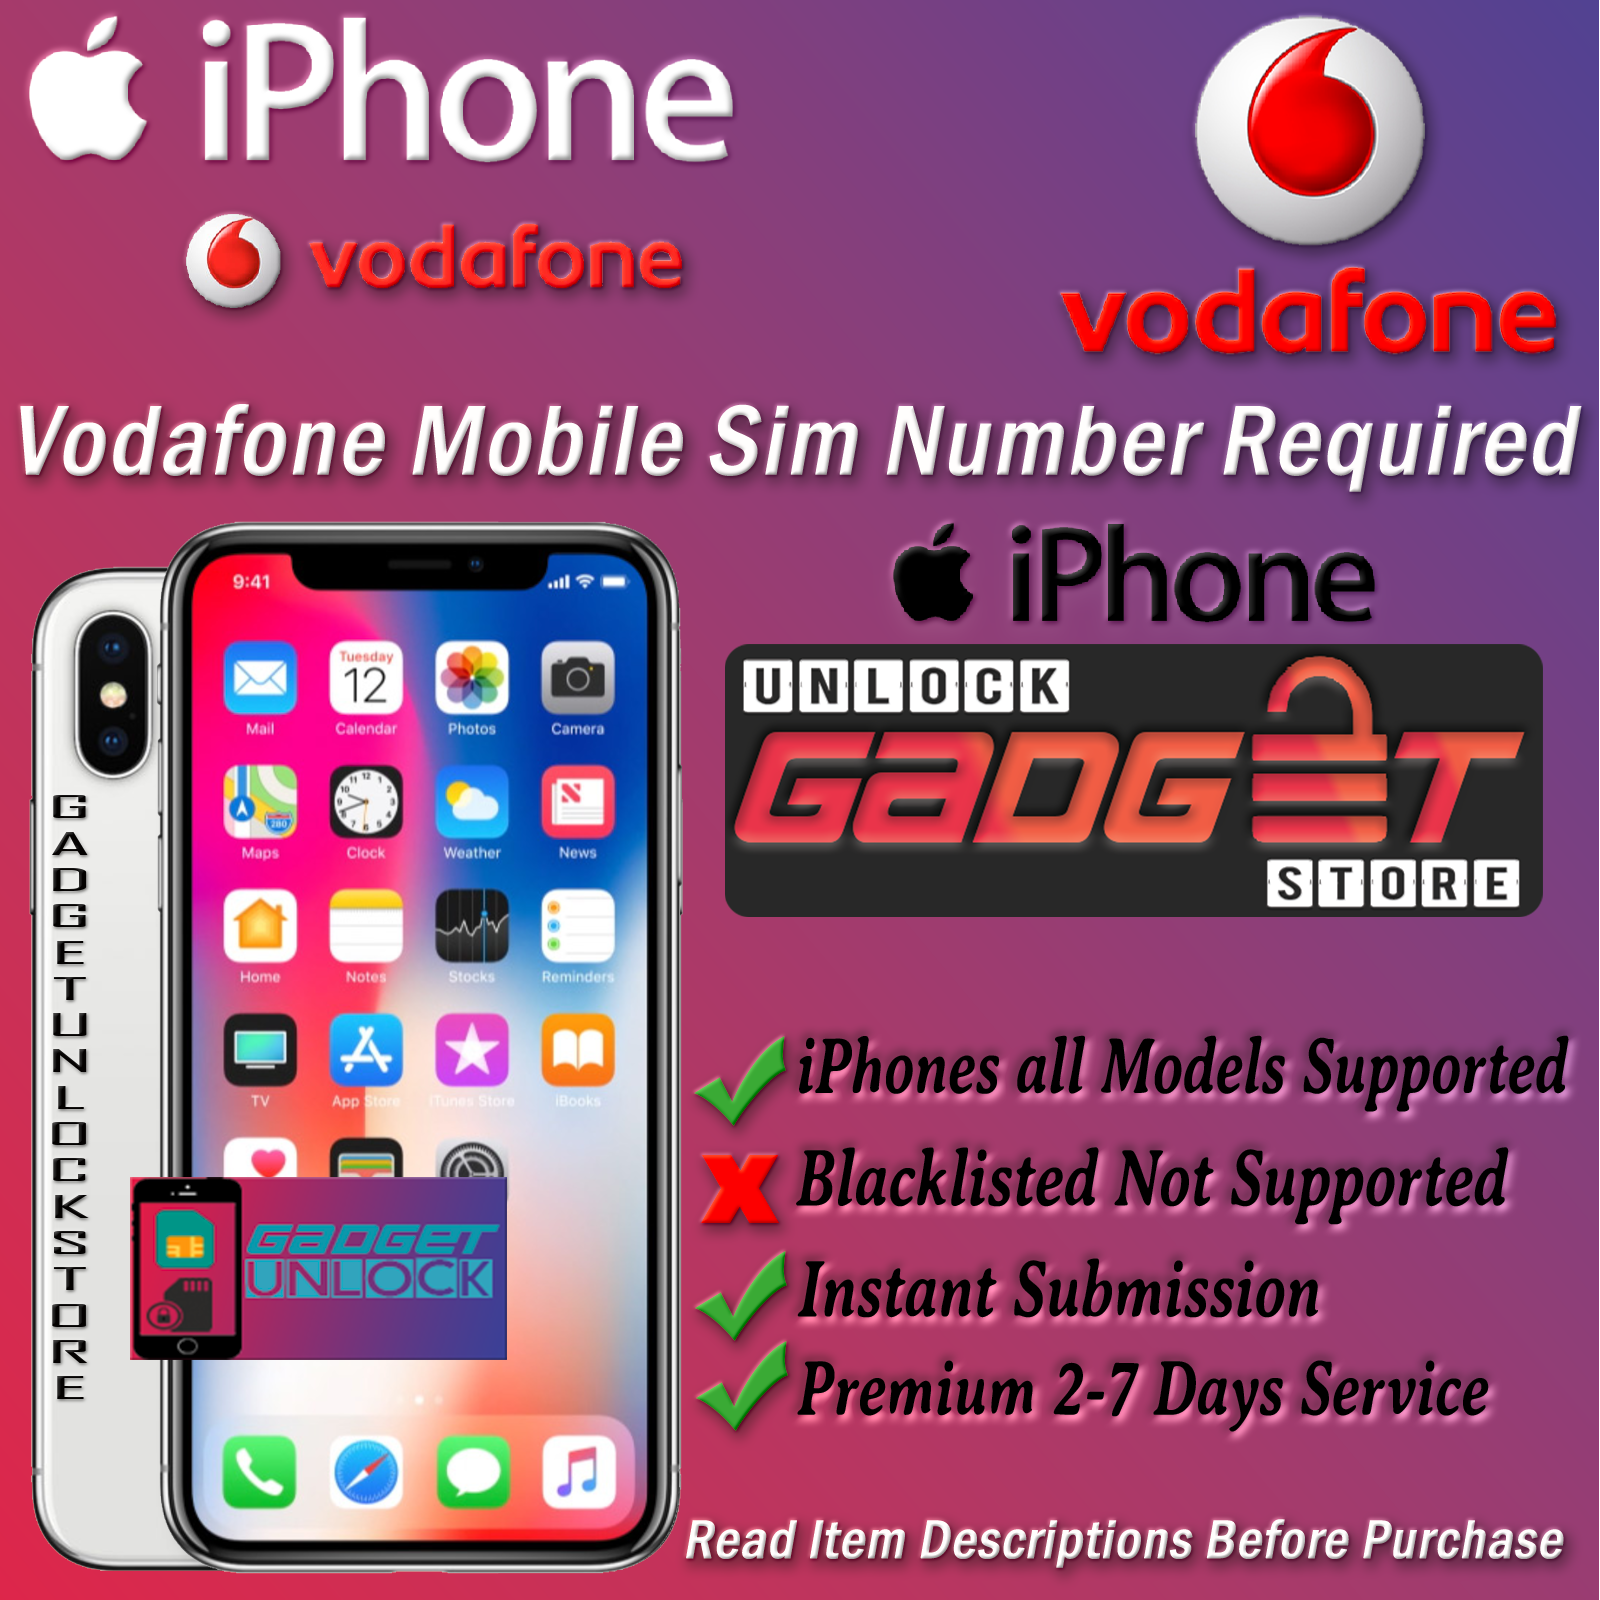 Unlock Service For iPhone 4 5 5S 5C SE 6 6S 7 8 X XS XR 11 Max Pro Vodafone UK 2